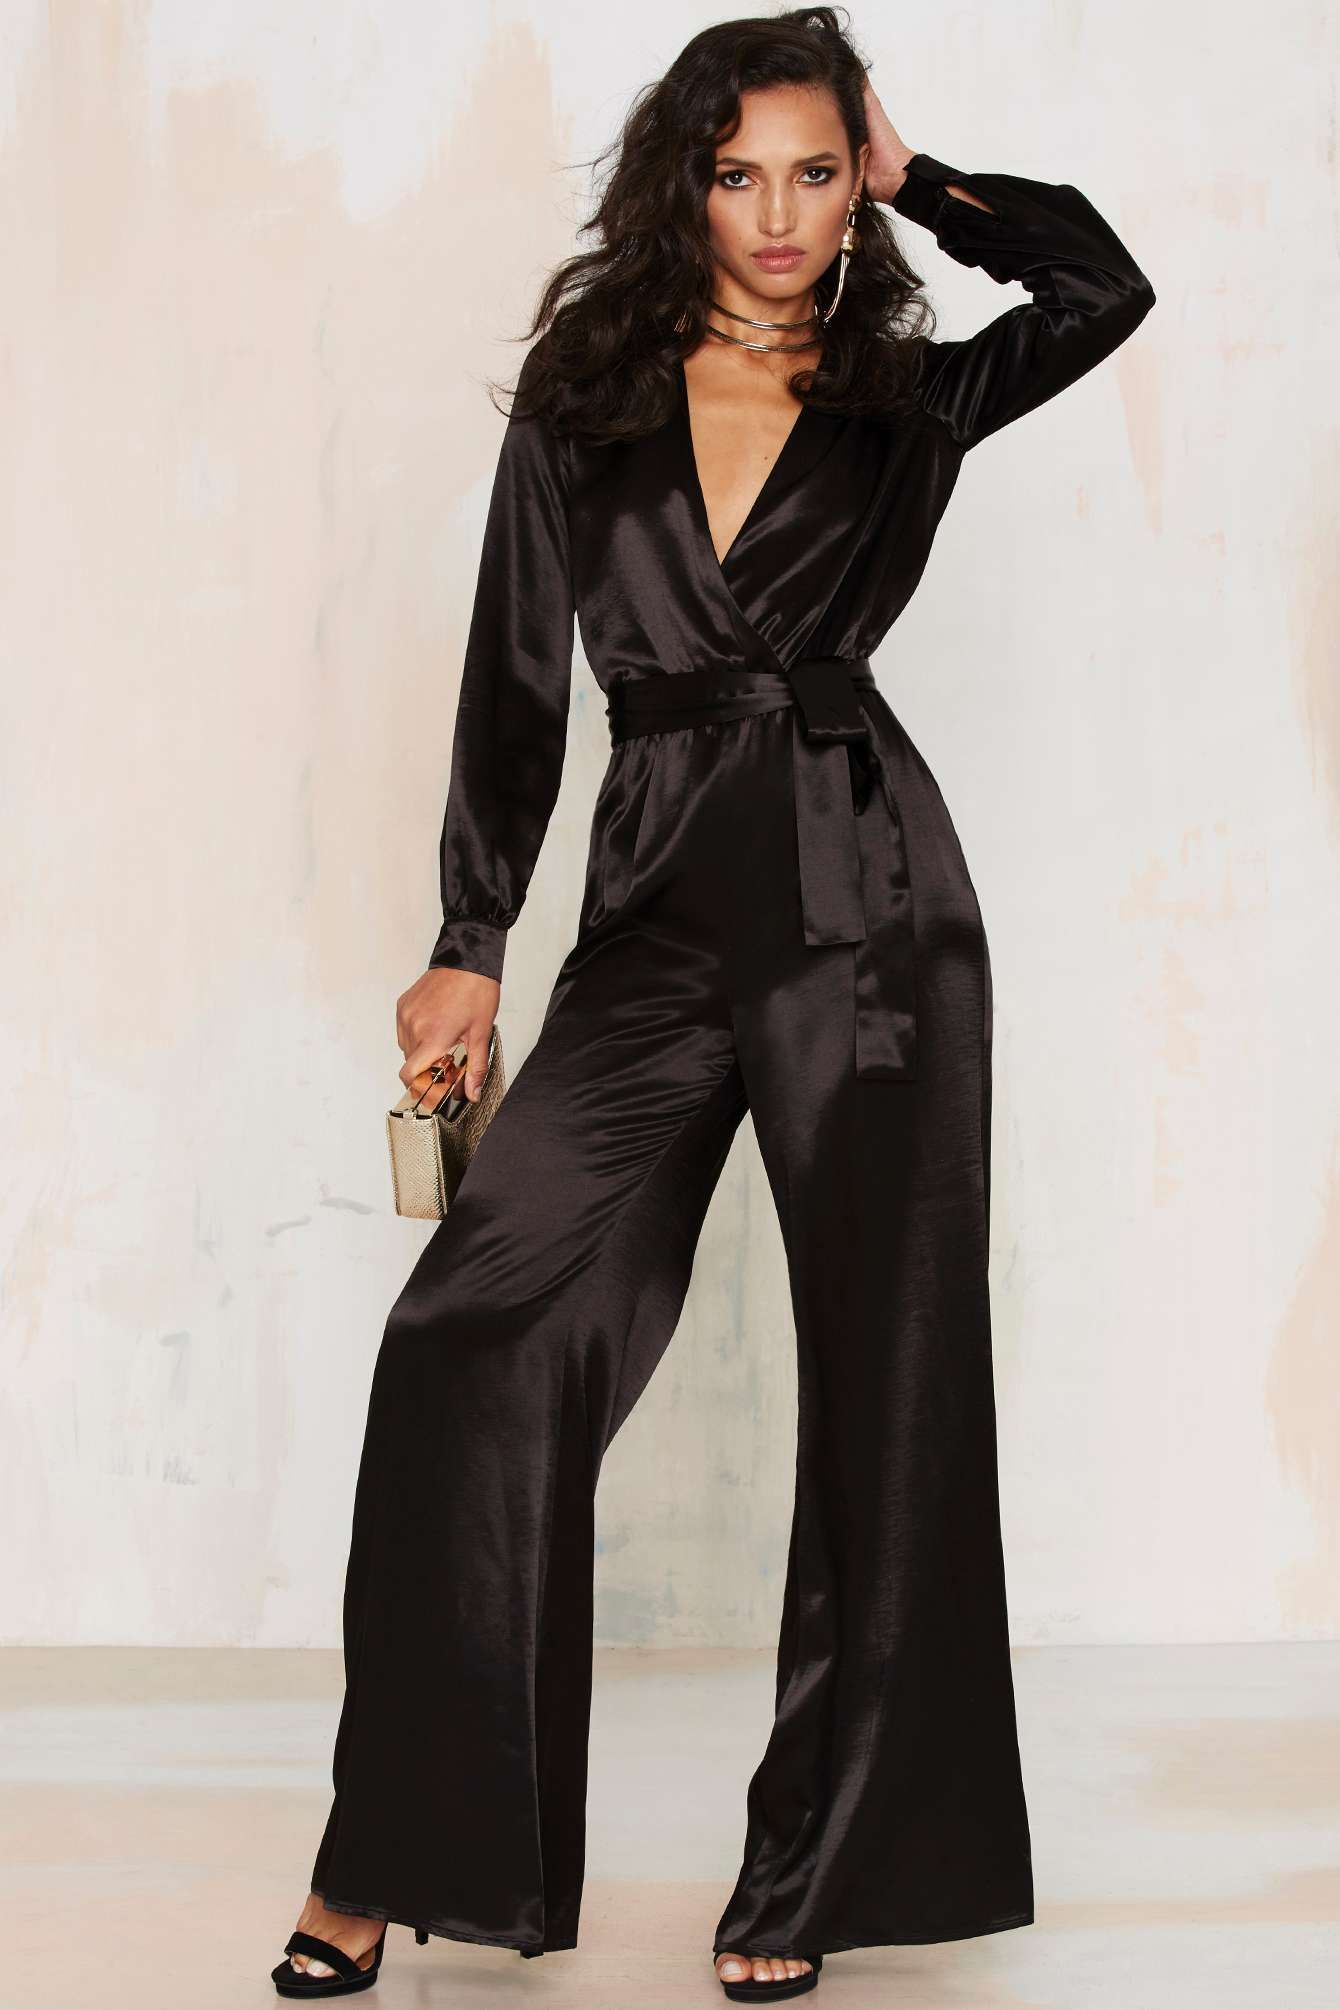 669c52b64eb3 After Party Vintage Love the Nightlife Plunging Jumpsuit